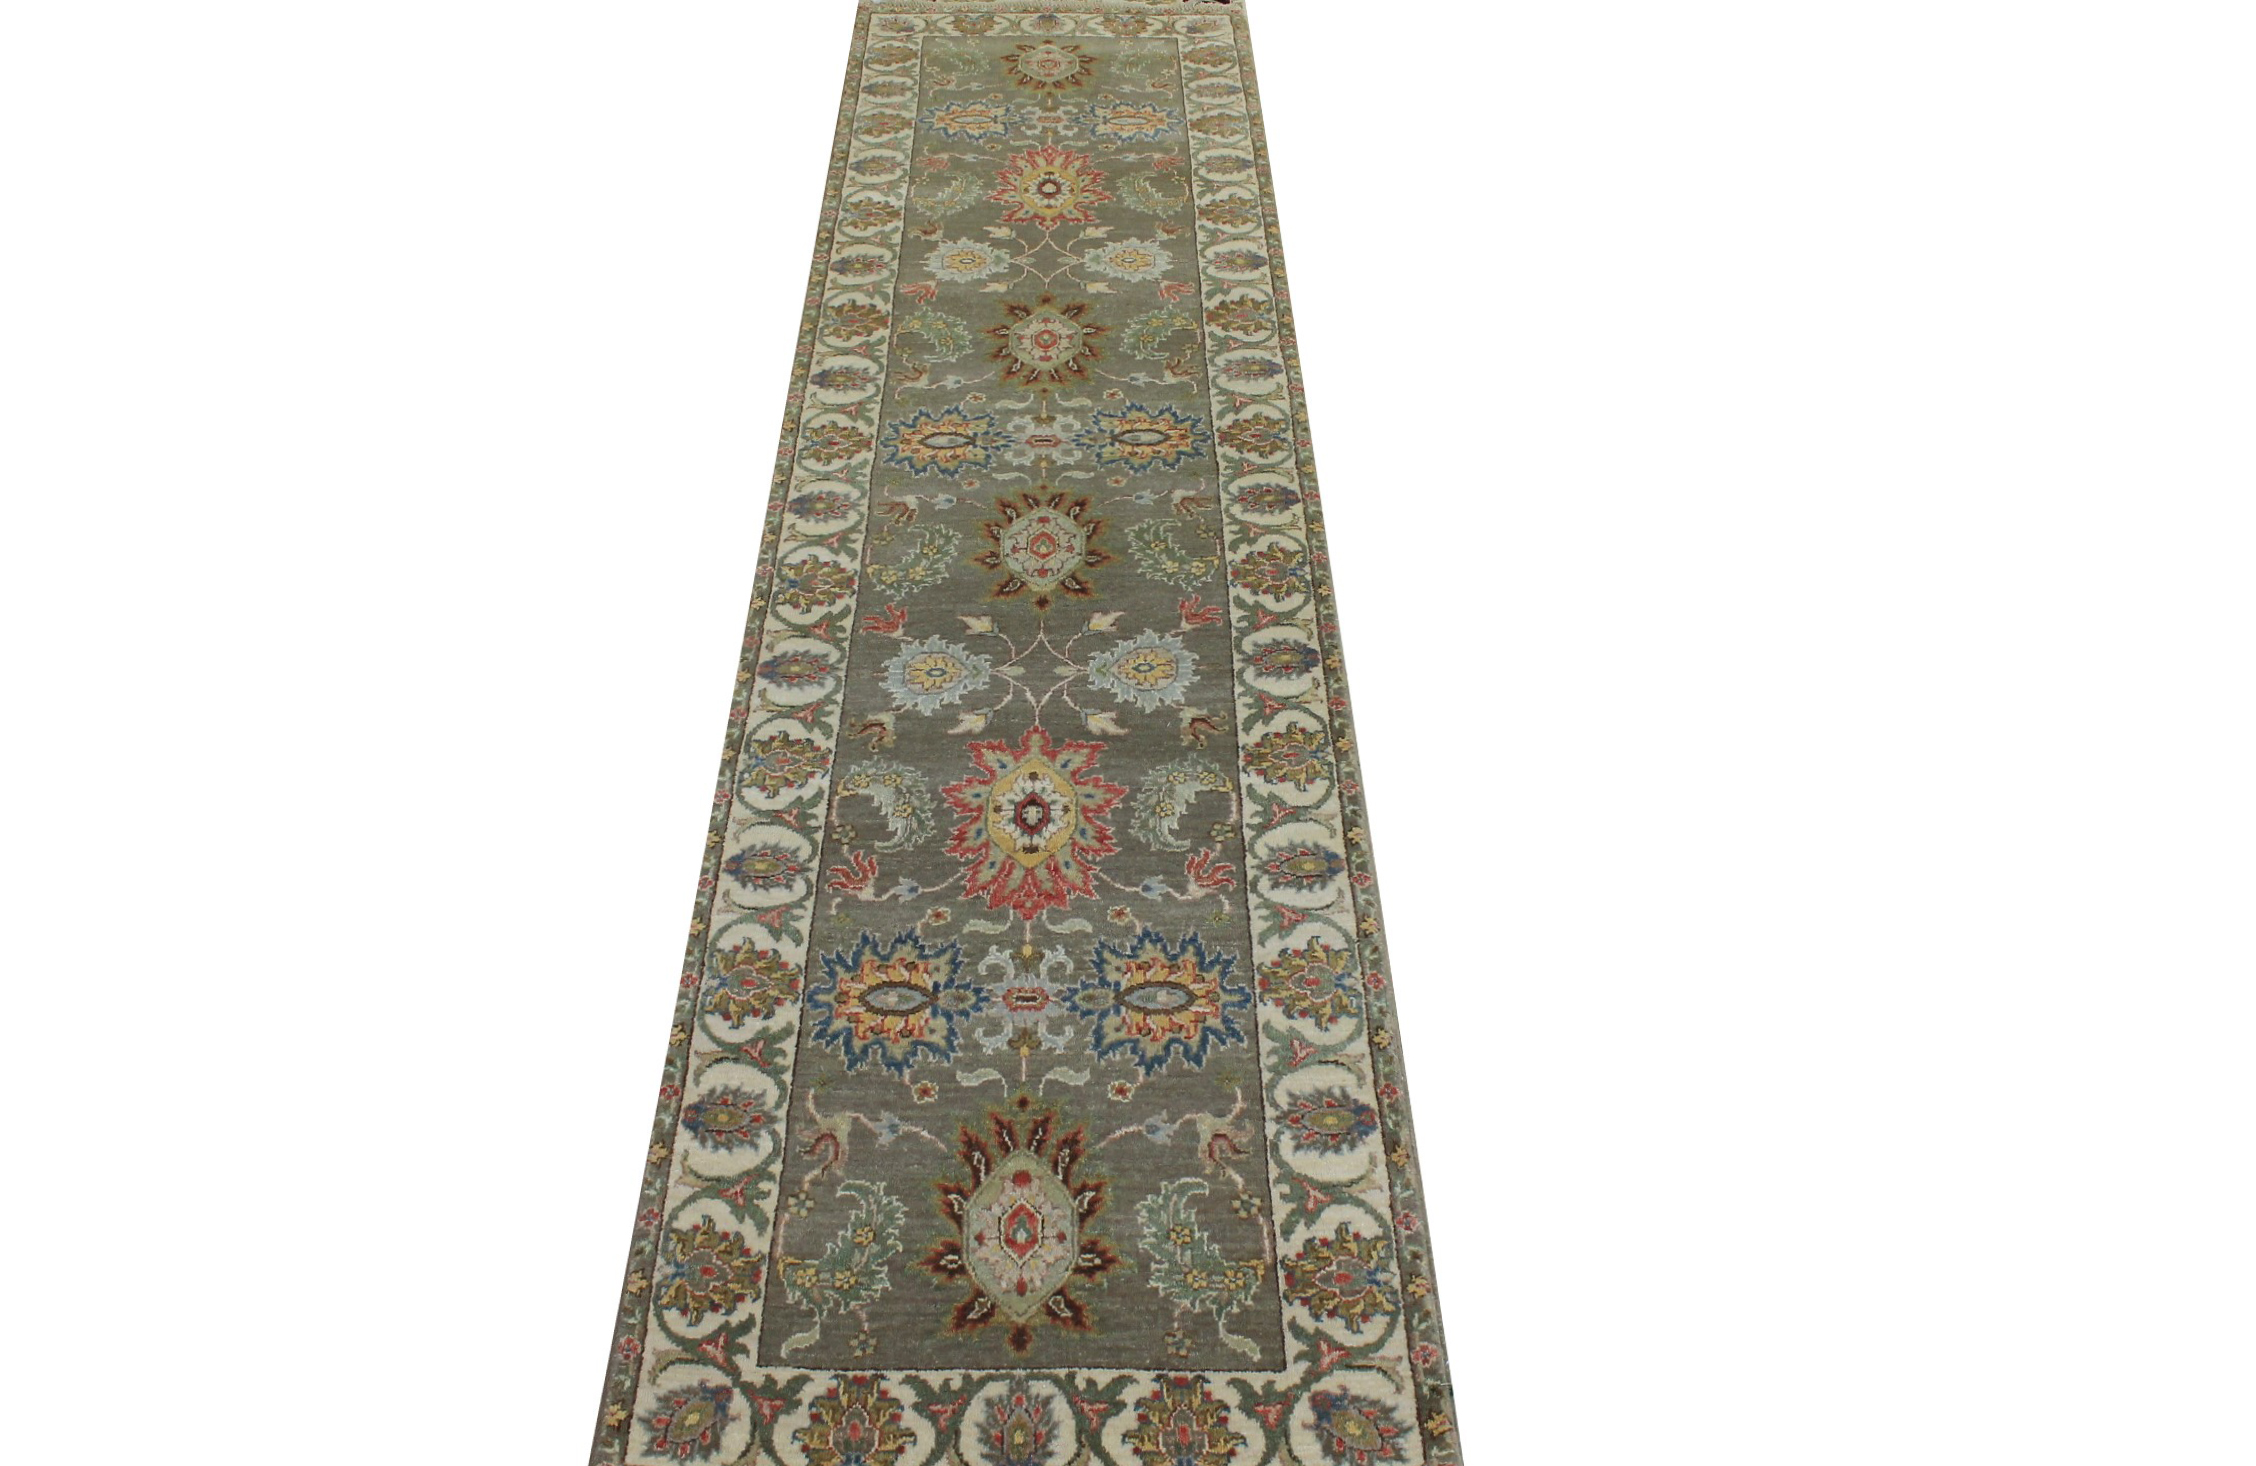 10 ft. Runner Traditional Hand Knotted Wool Area Rug - MR024040